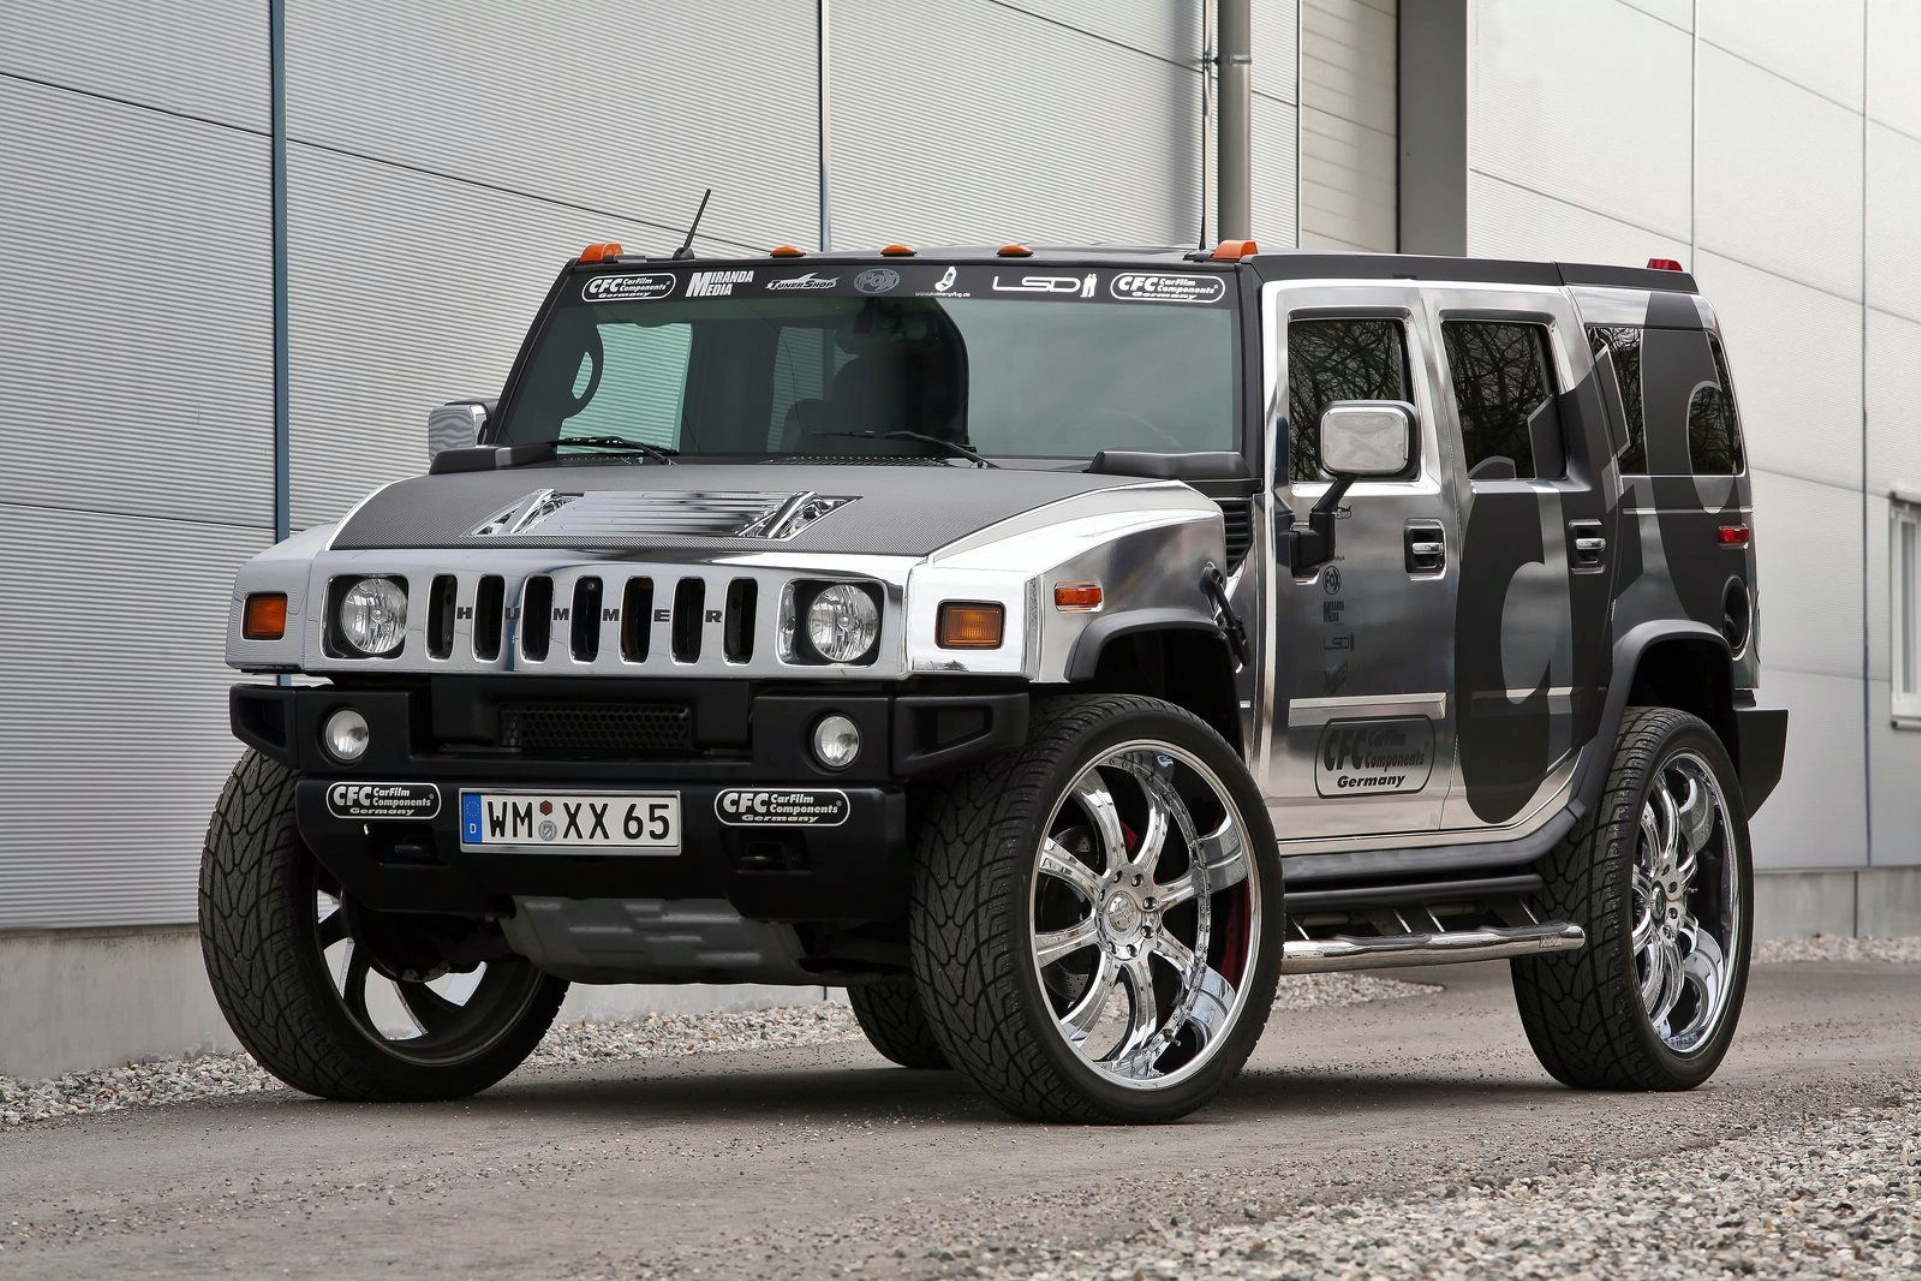 2010 hummer h2 tuning 4x4 suv d wallpaper 1921x1281 112120 wallpaperup. Black Bedroom Furniture Sets. Home Design Ideas